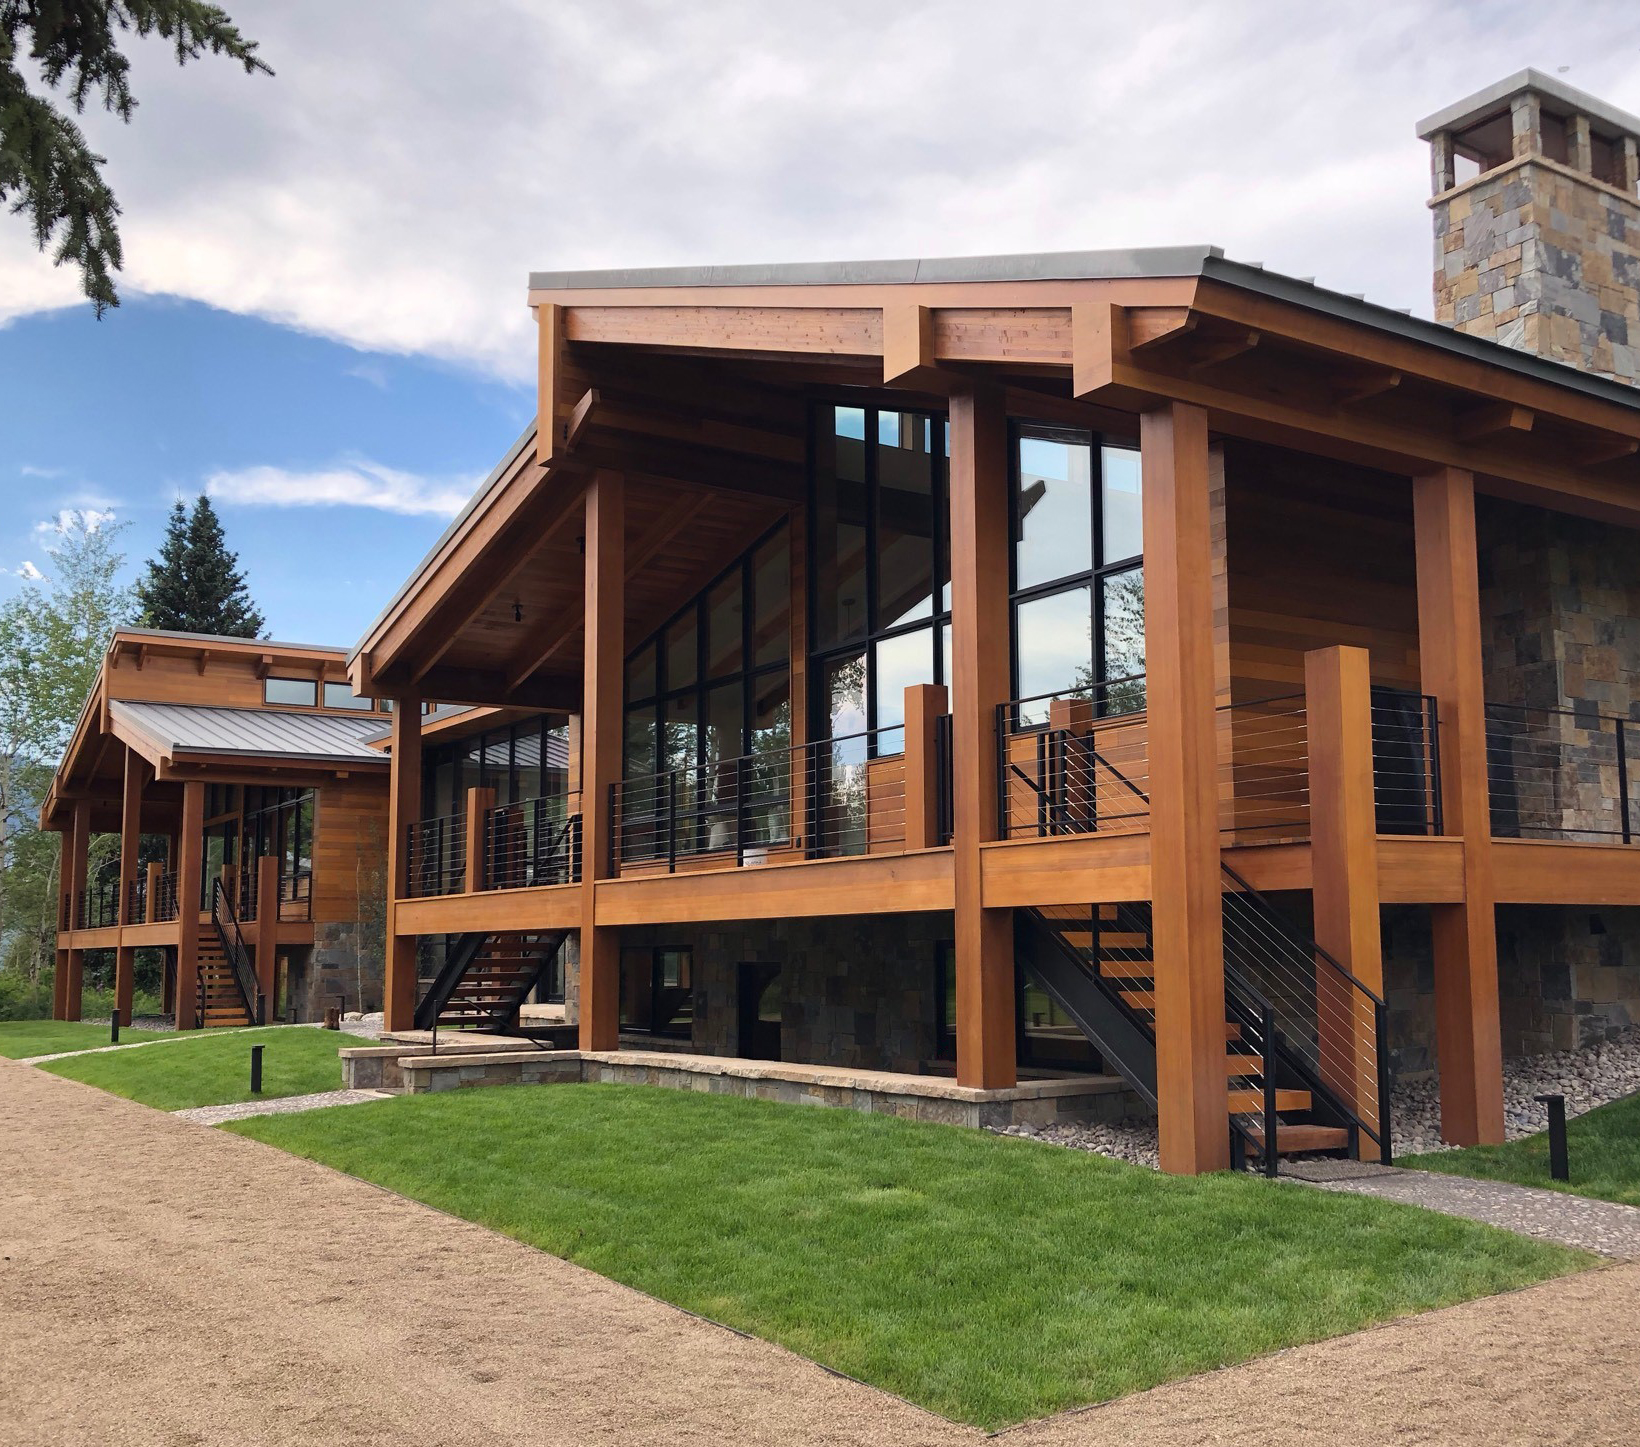 Exterior view of Jackson Hole Ranch by NewStudio Architecture.